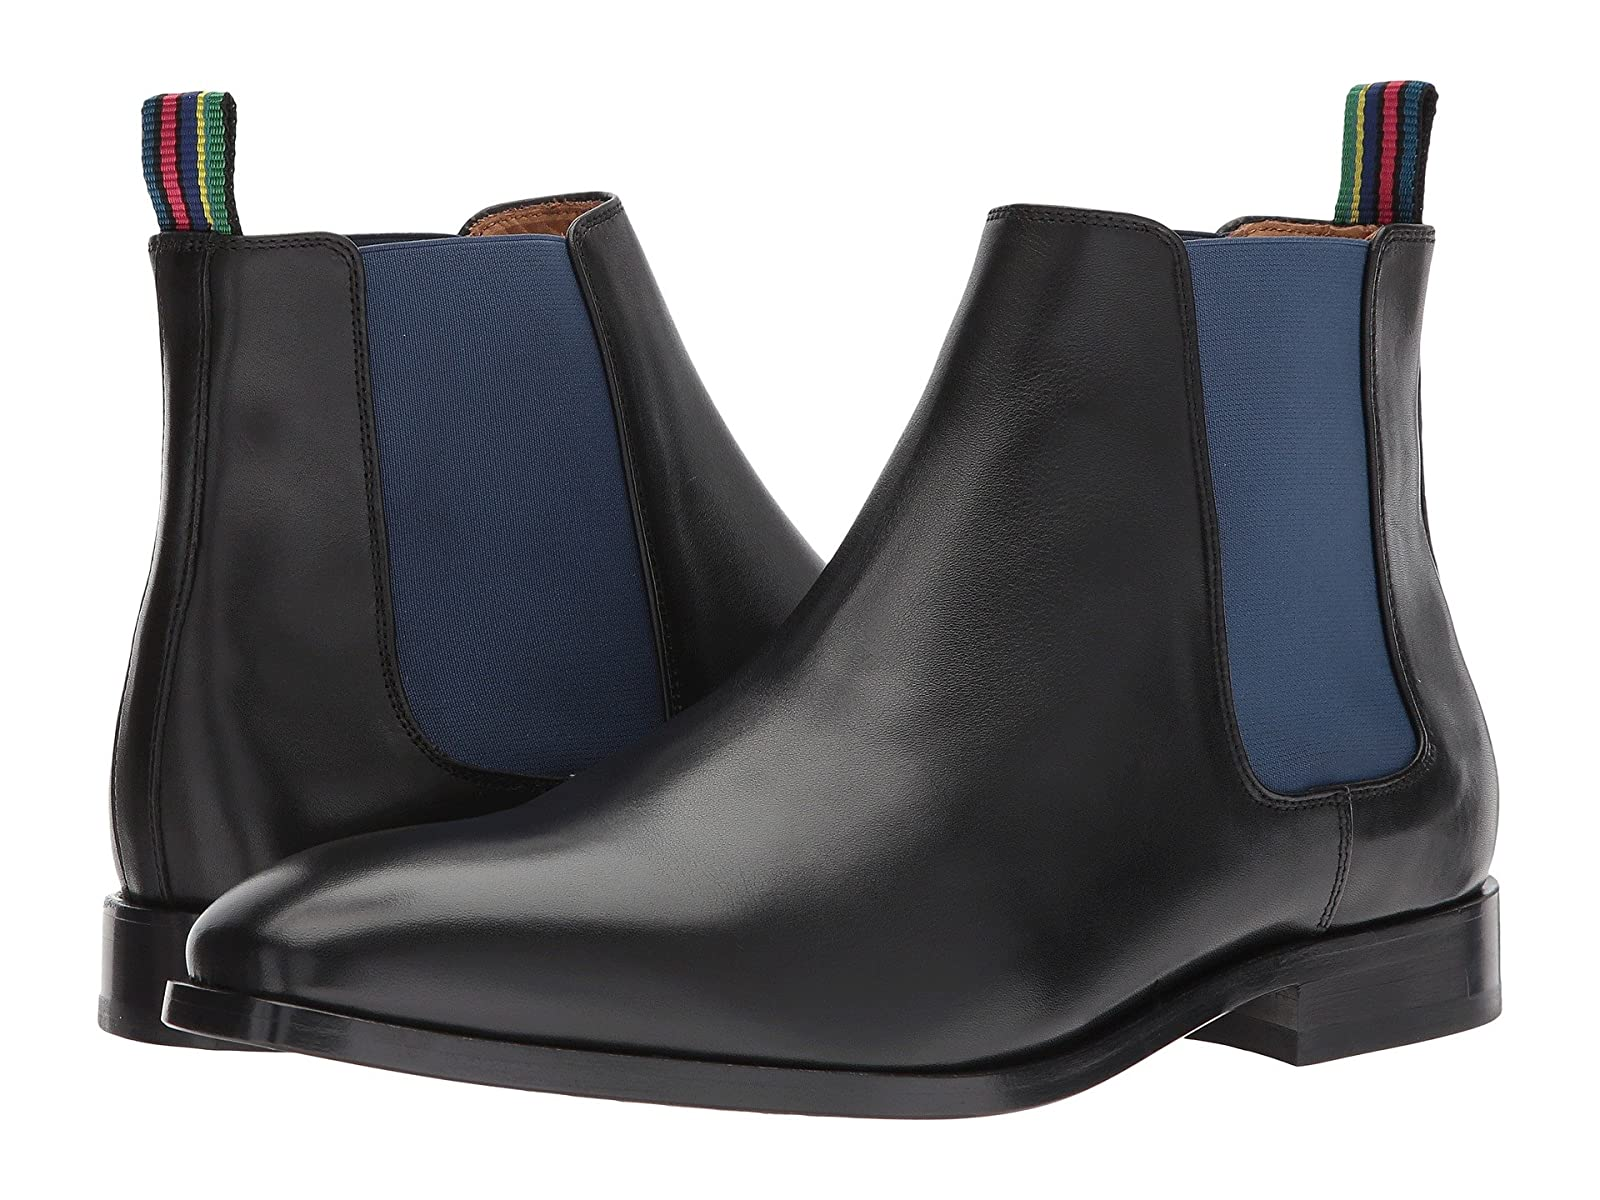 Paul Smith PS Gerald BootCheap and distinctive eye-catching shoes